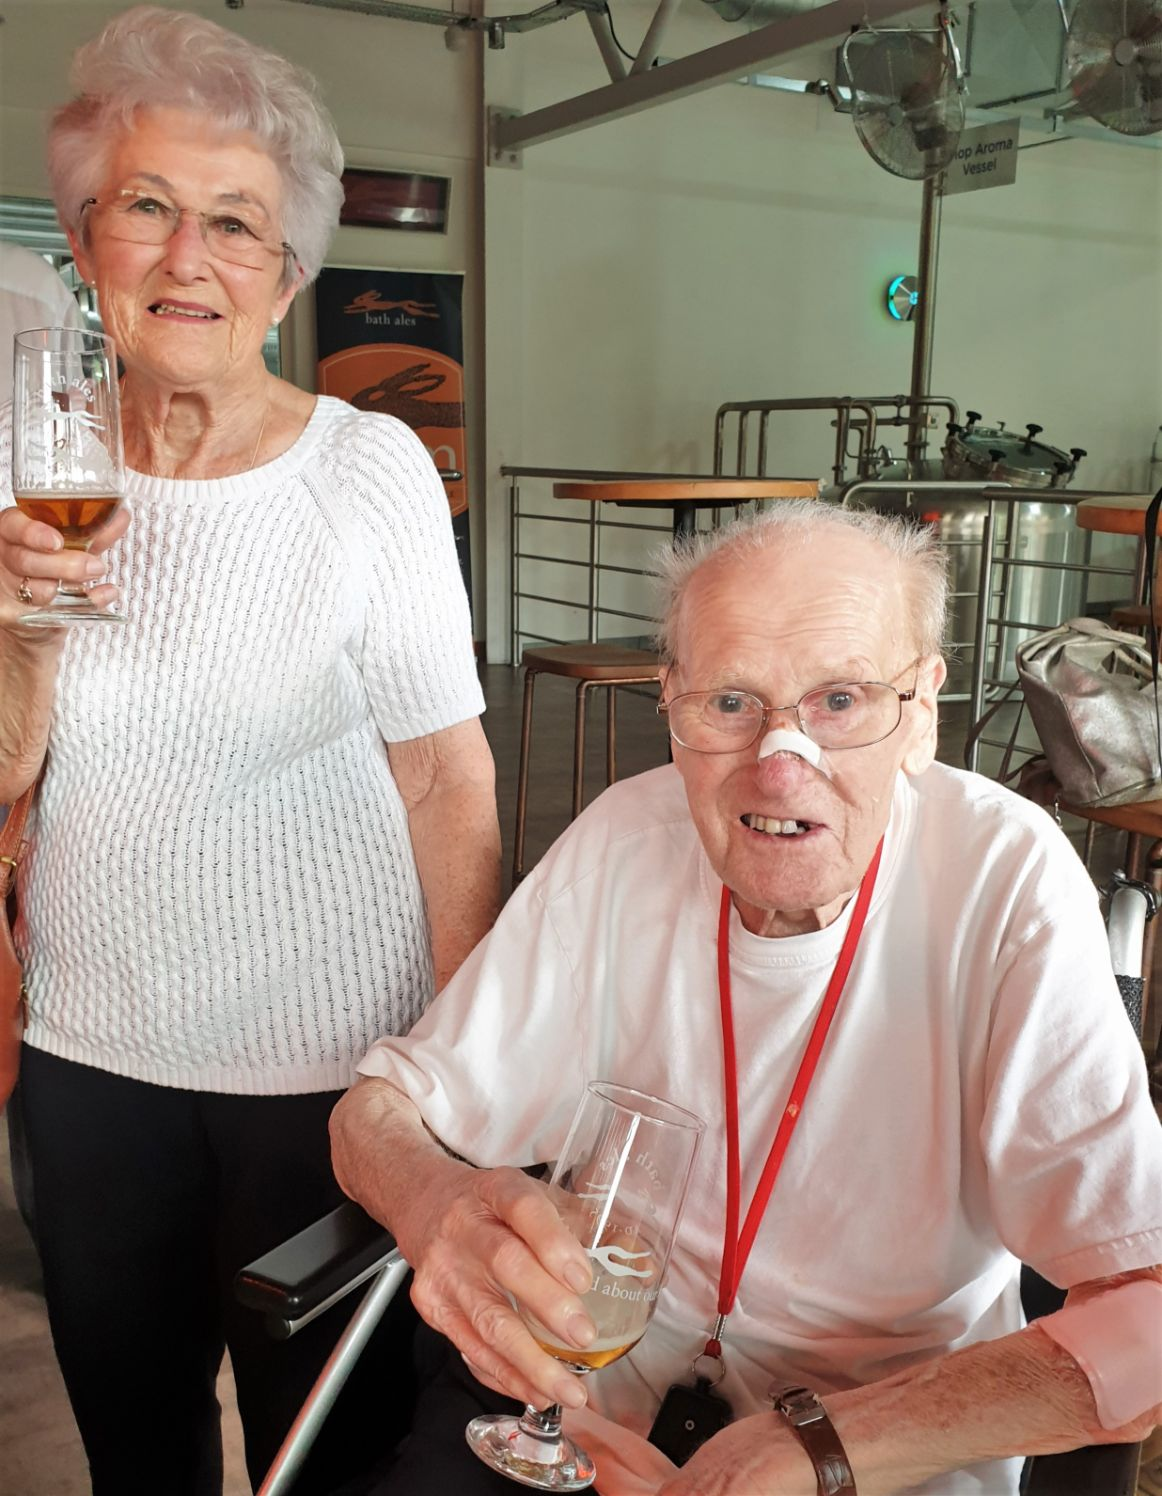 Residents at Ivybank House Care Home enjoy a beer tasting tour at Bath Ales Brewery